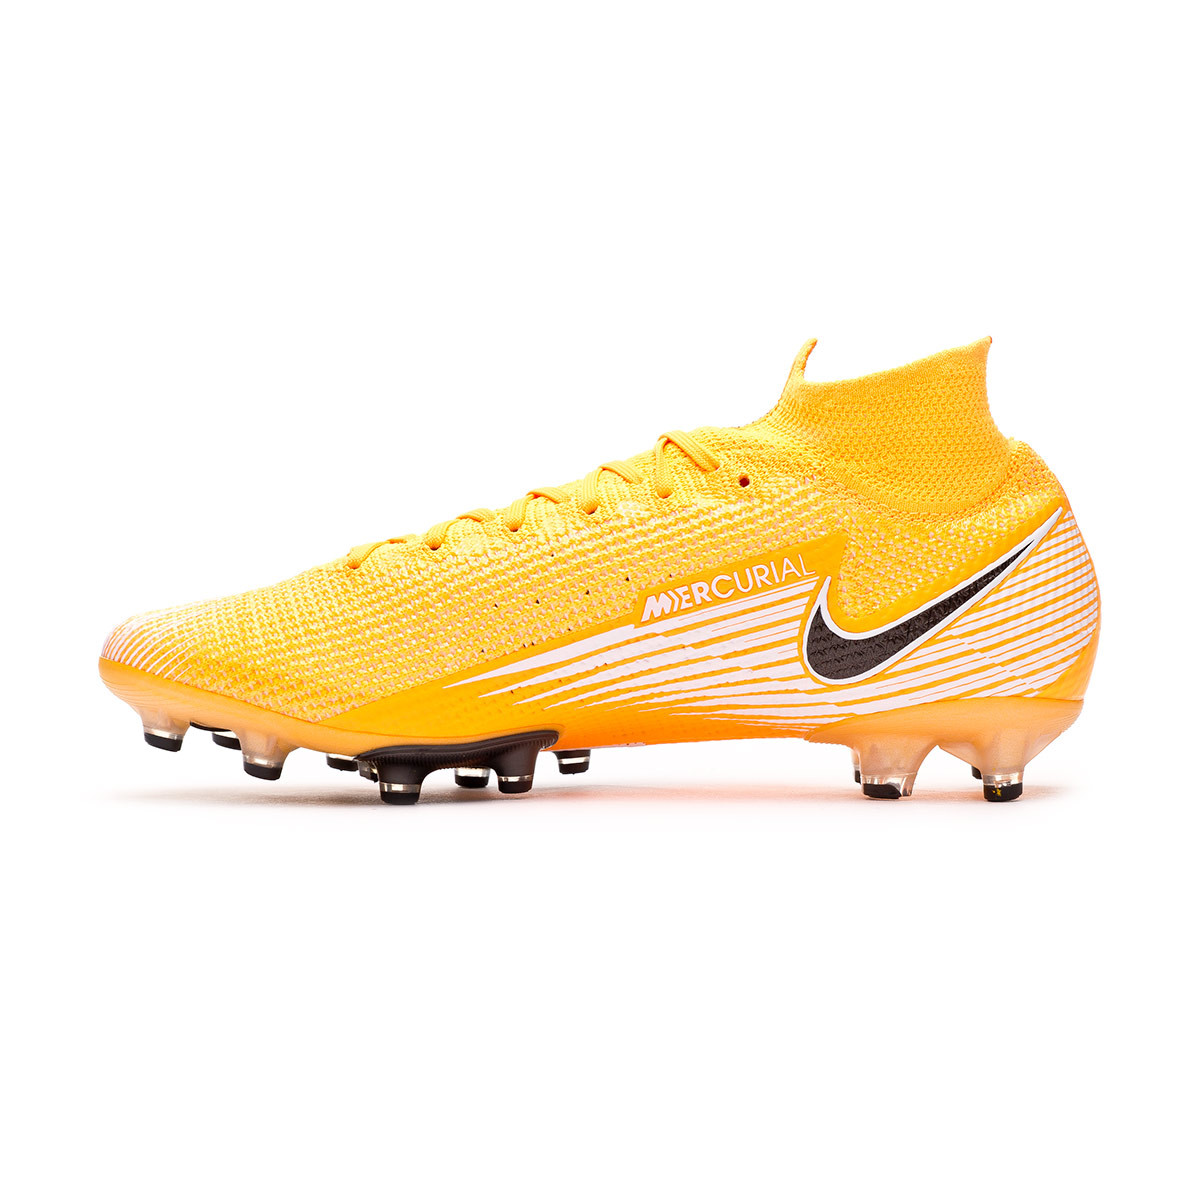 Sinis a pesar de fantasma  Football Boots Nike Mercurial Superfly VII Elite AG-PRO Laser  orange-Black-White-Laser orange - Football store Fútbol Emotion